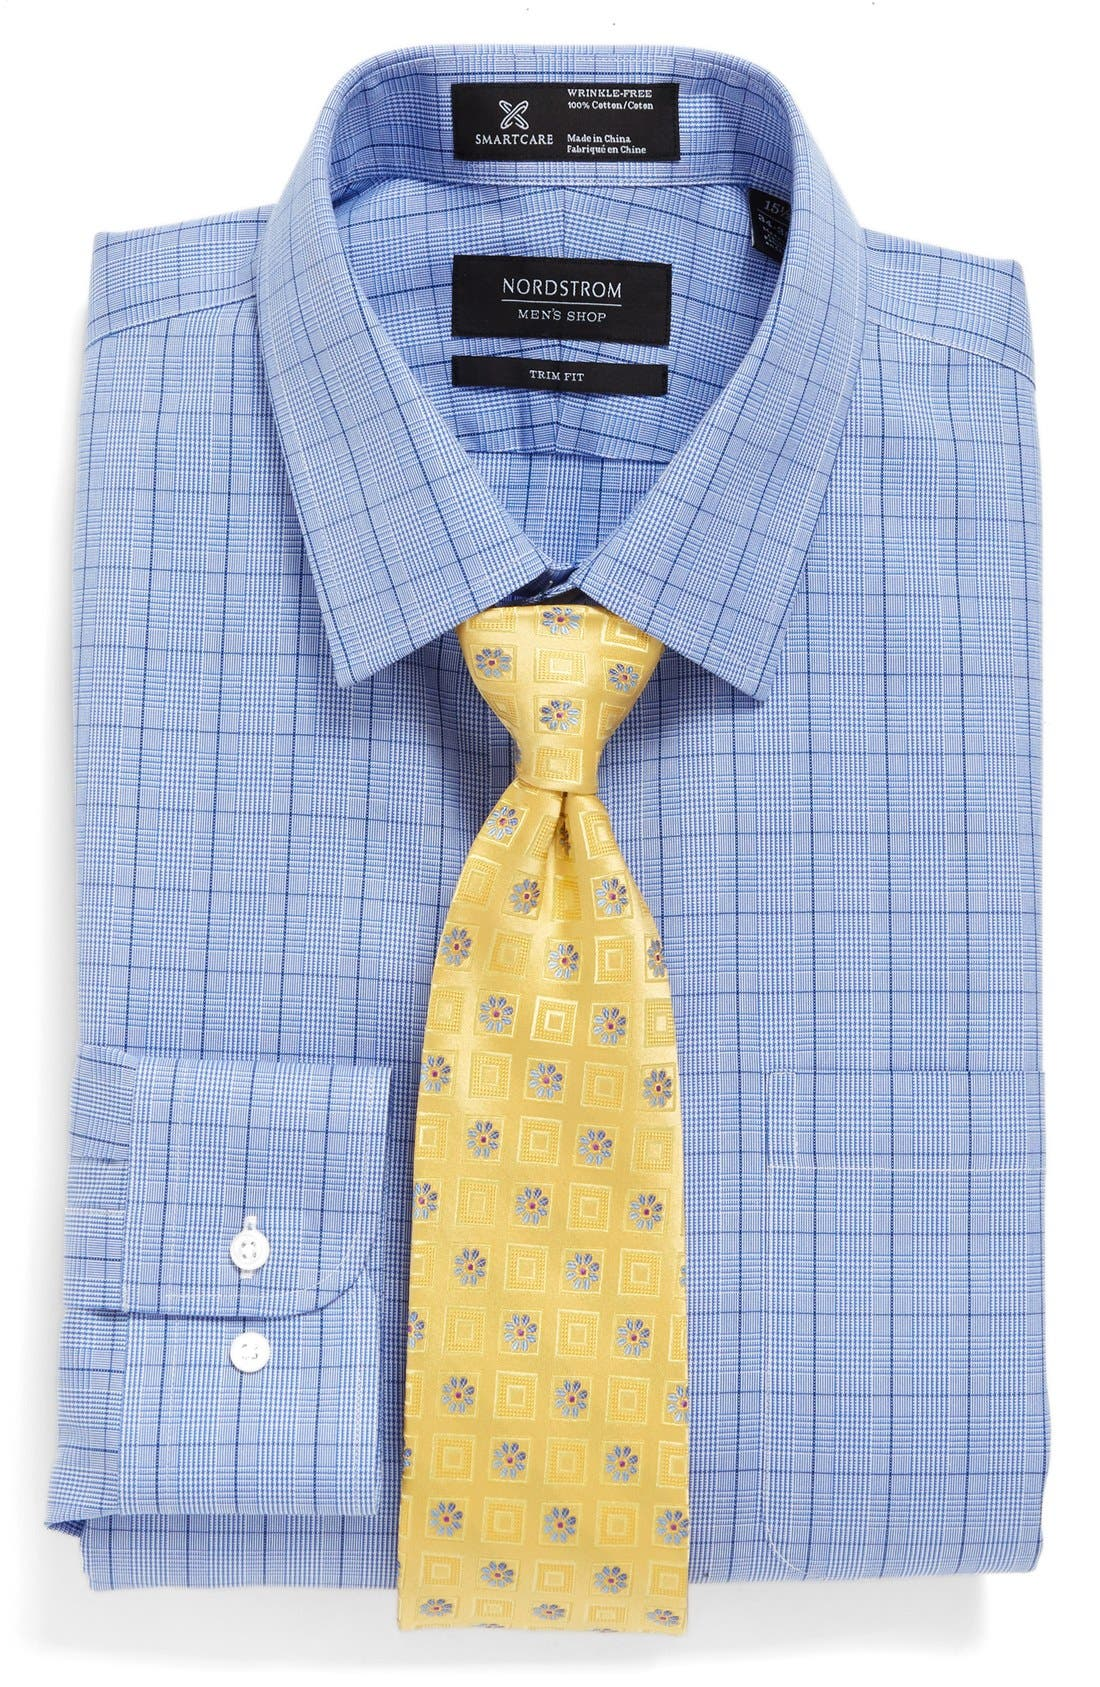 Alternate Image 3  - Nordstrom Men's Shop Smartcare™ Trim Fit Plaid Dress Shirt